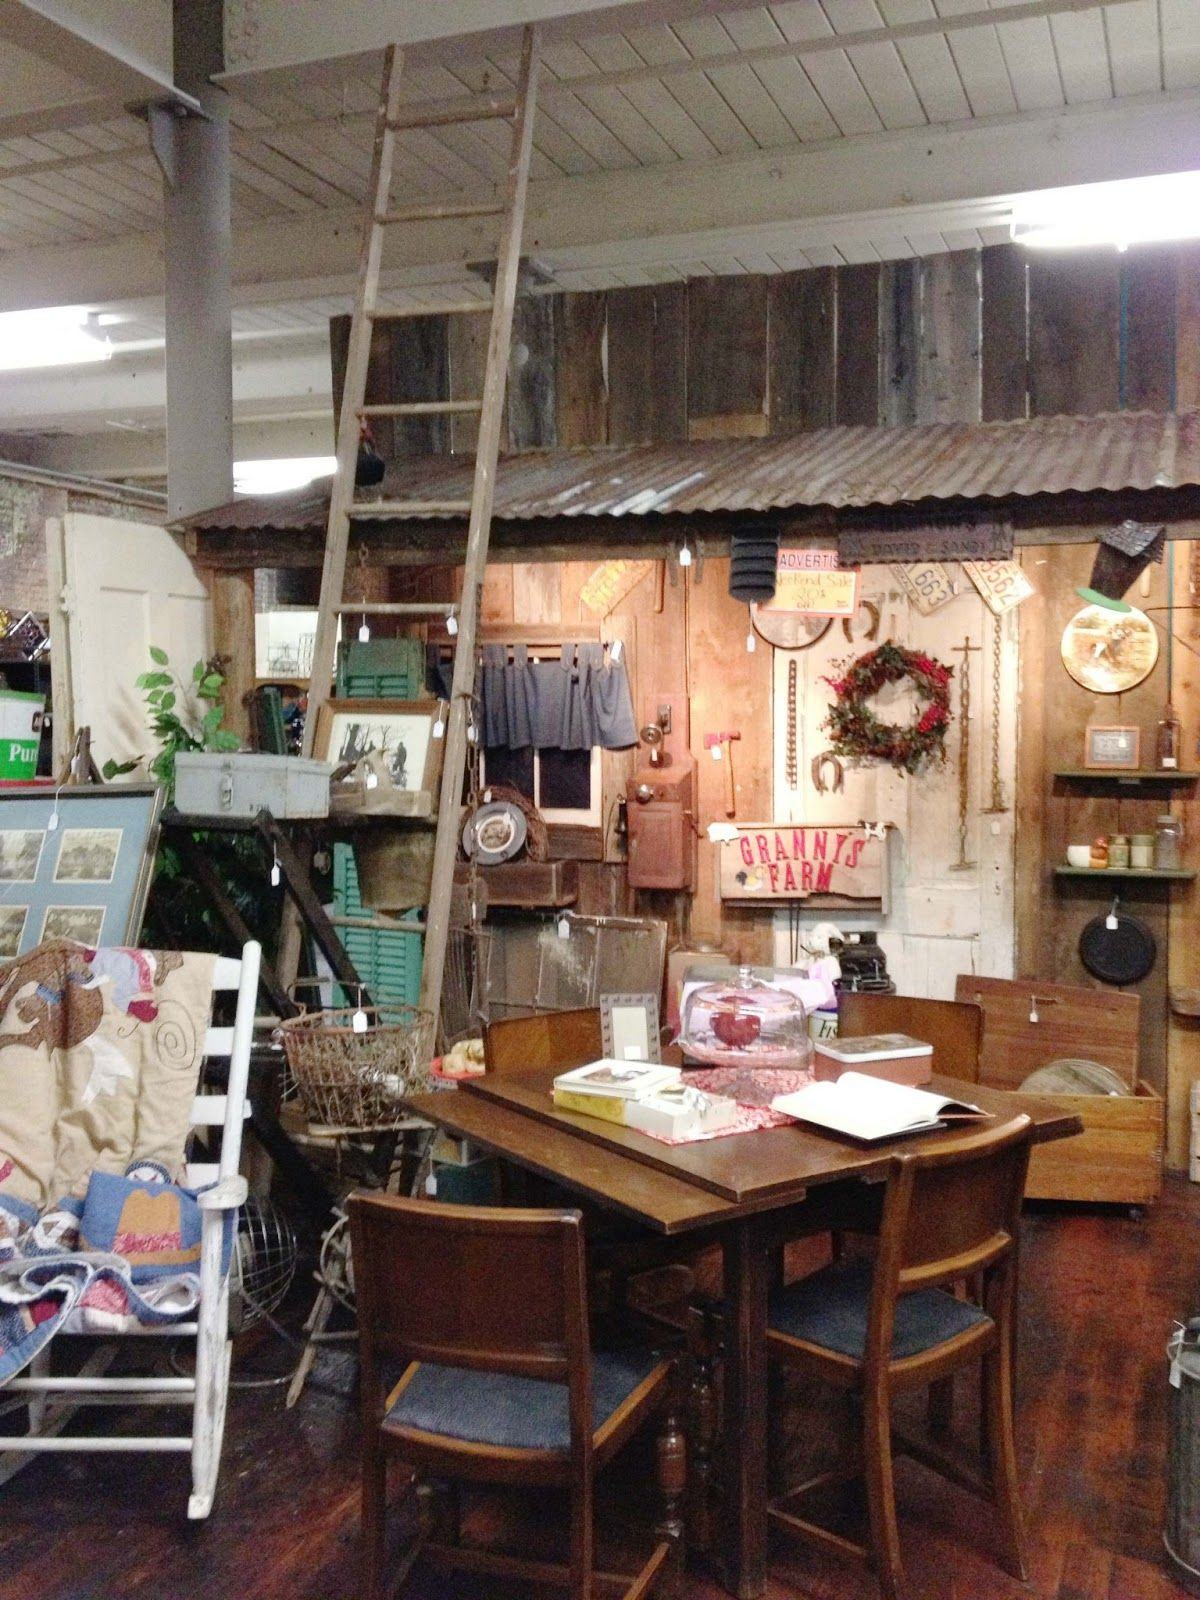 Plank Wall With Rusty Corrugated Tin Roof Barn Kitchen Booth